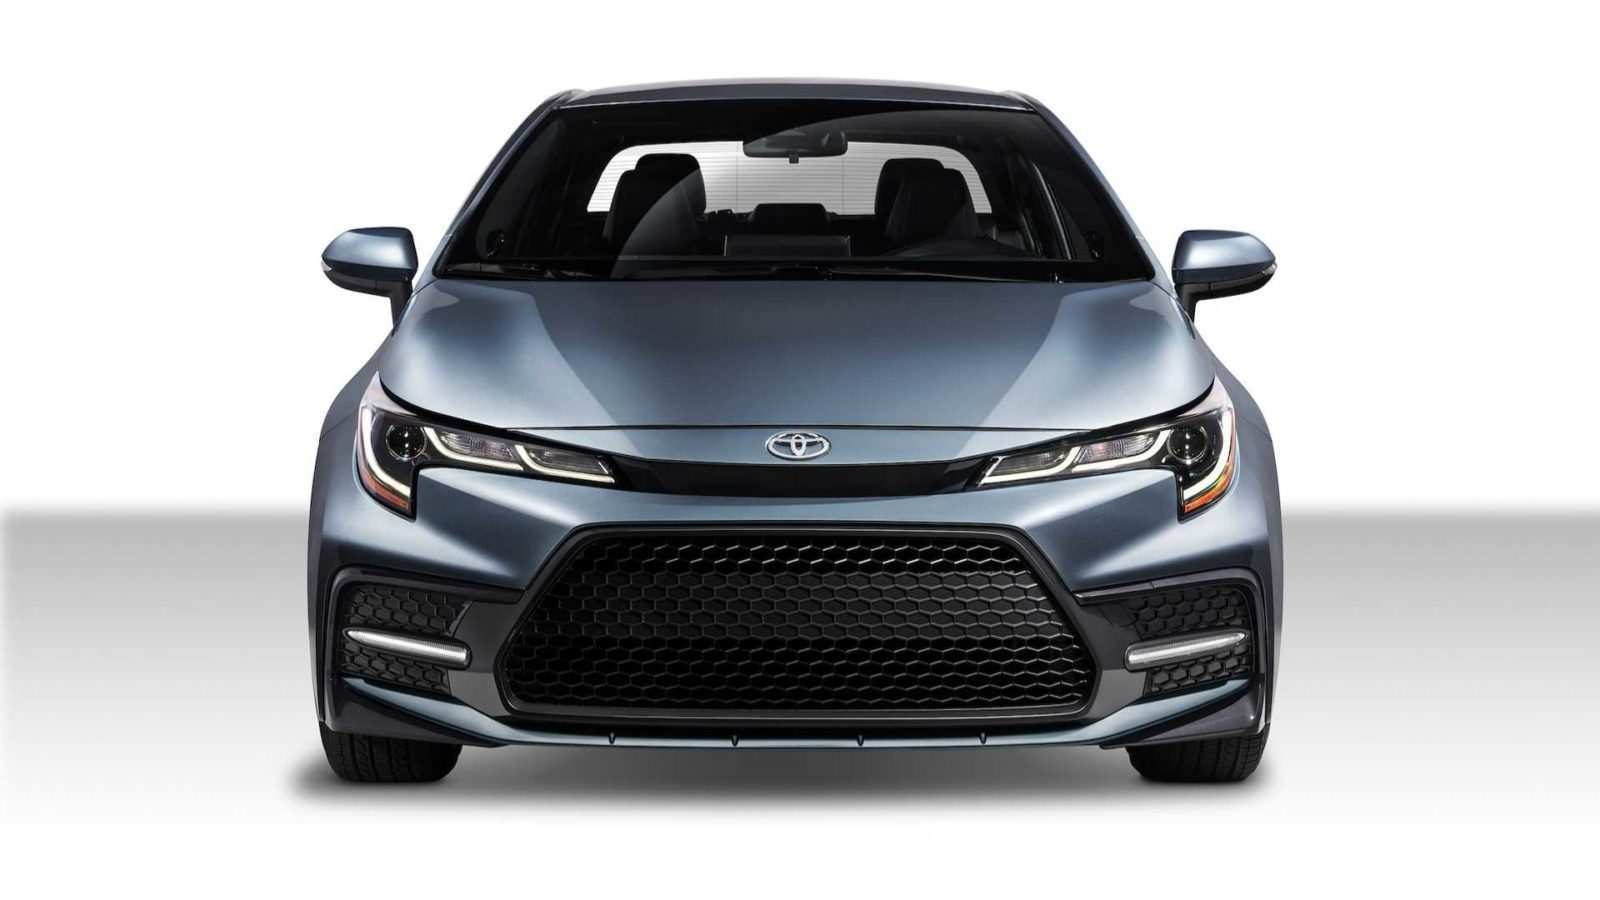 87 New Toyota Corolla 2020 Model In Pakistan Specs And Review